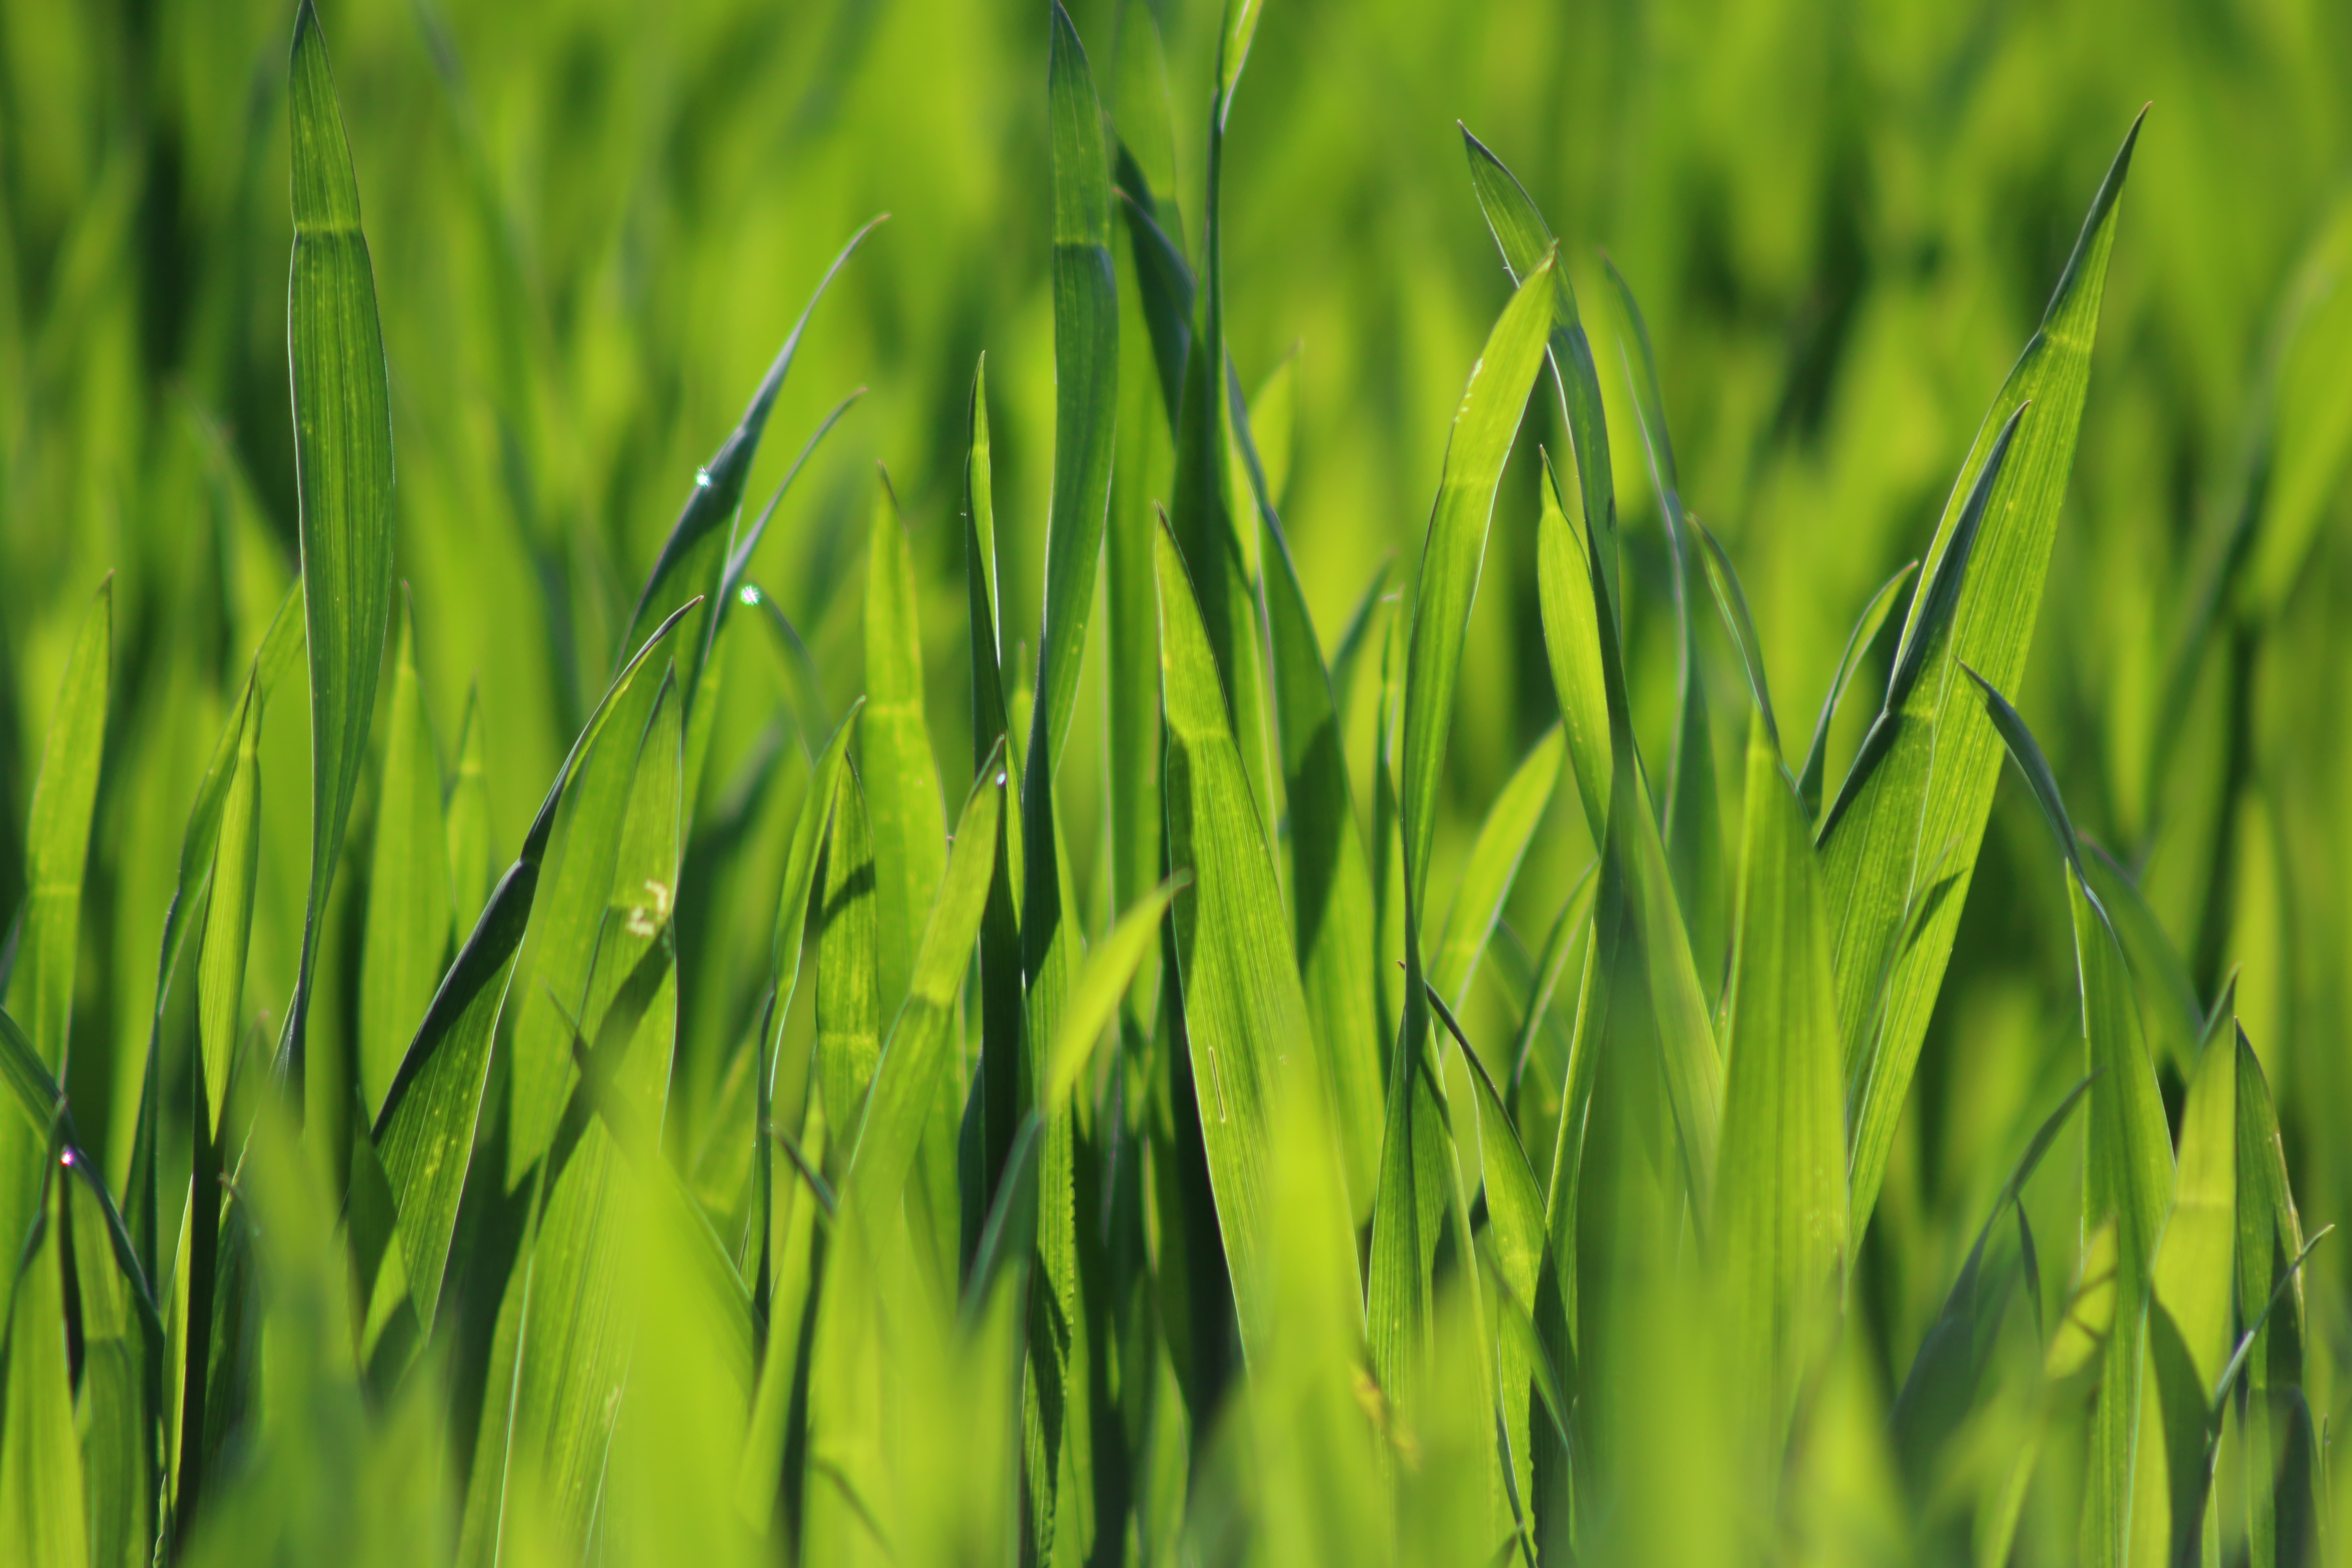 close up photo of blades of grass